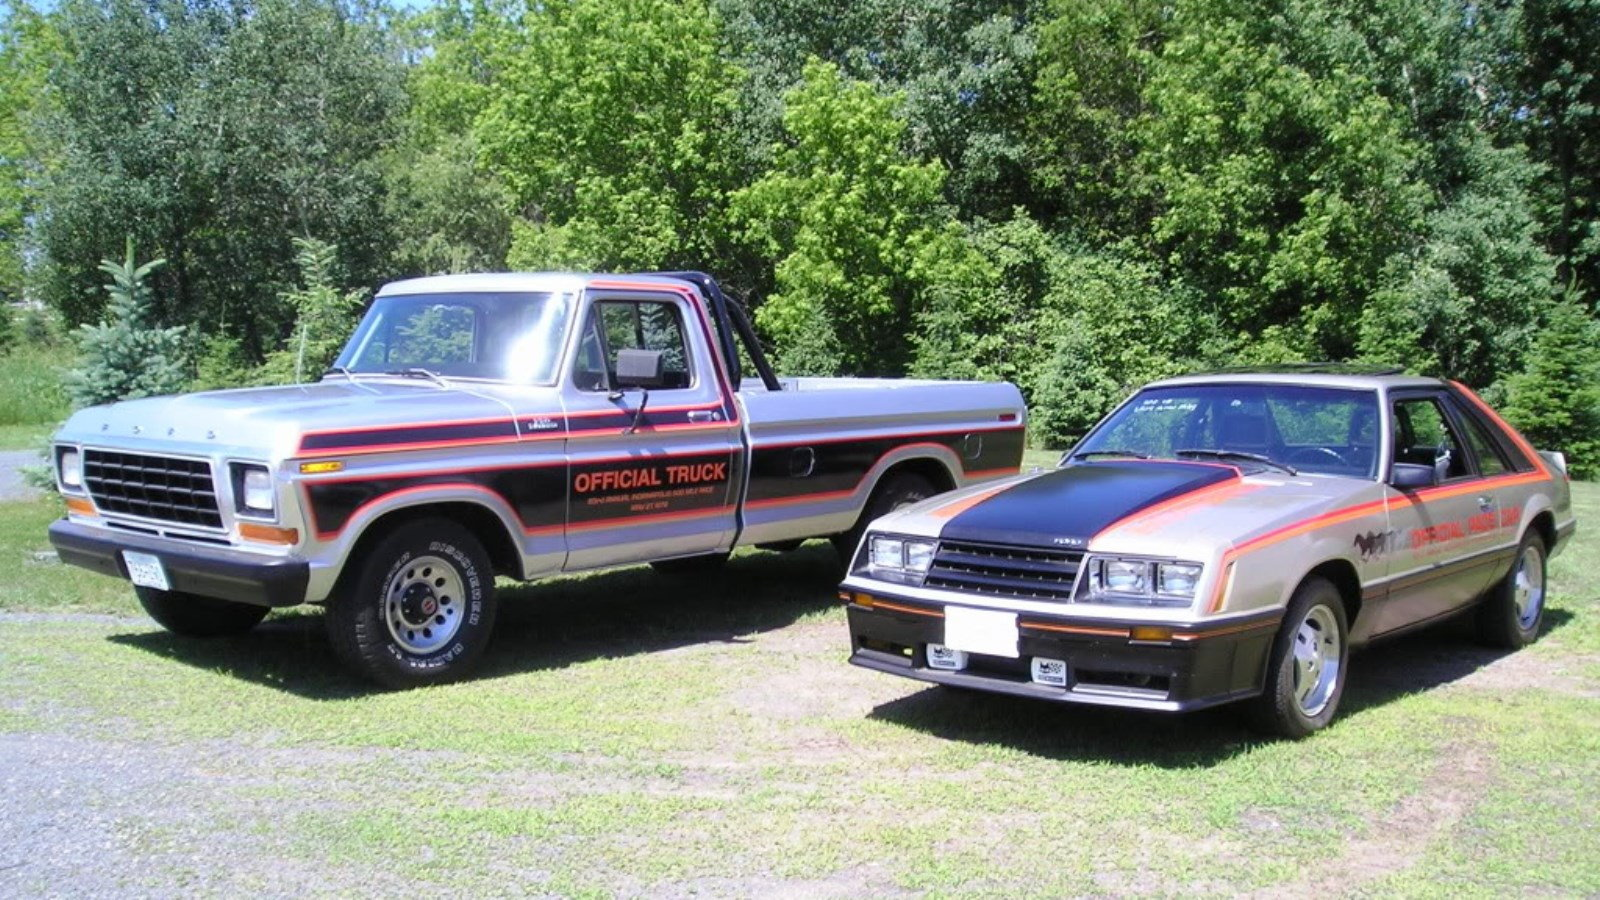 8. 1979 Ford F-150 Indy Pace Truck